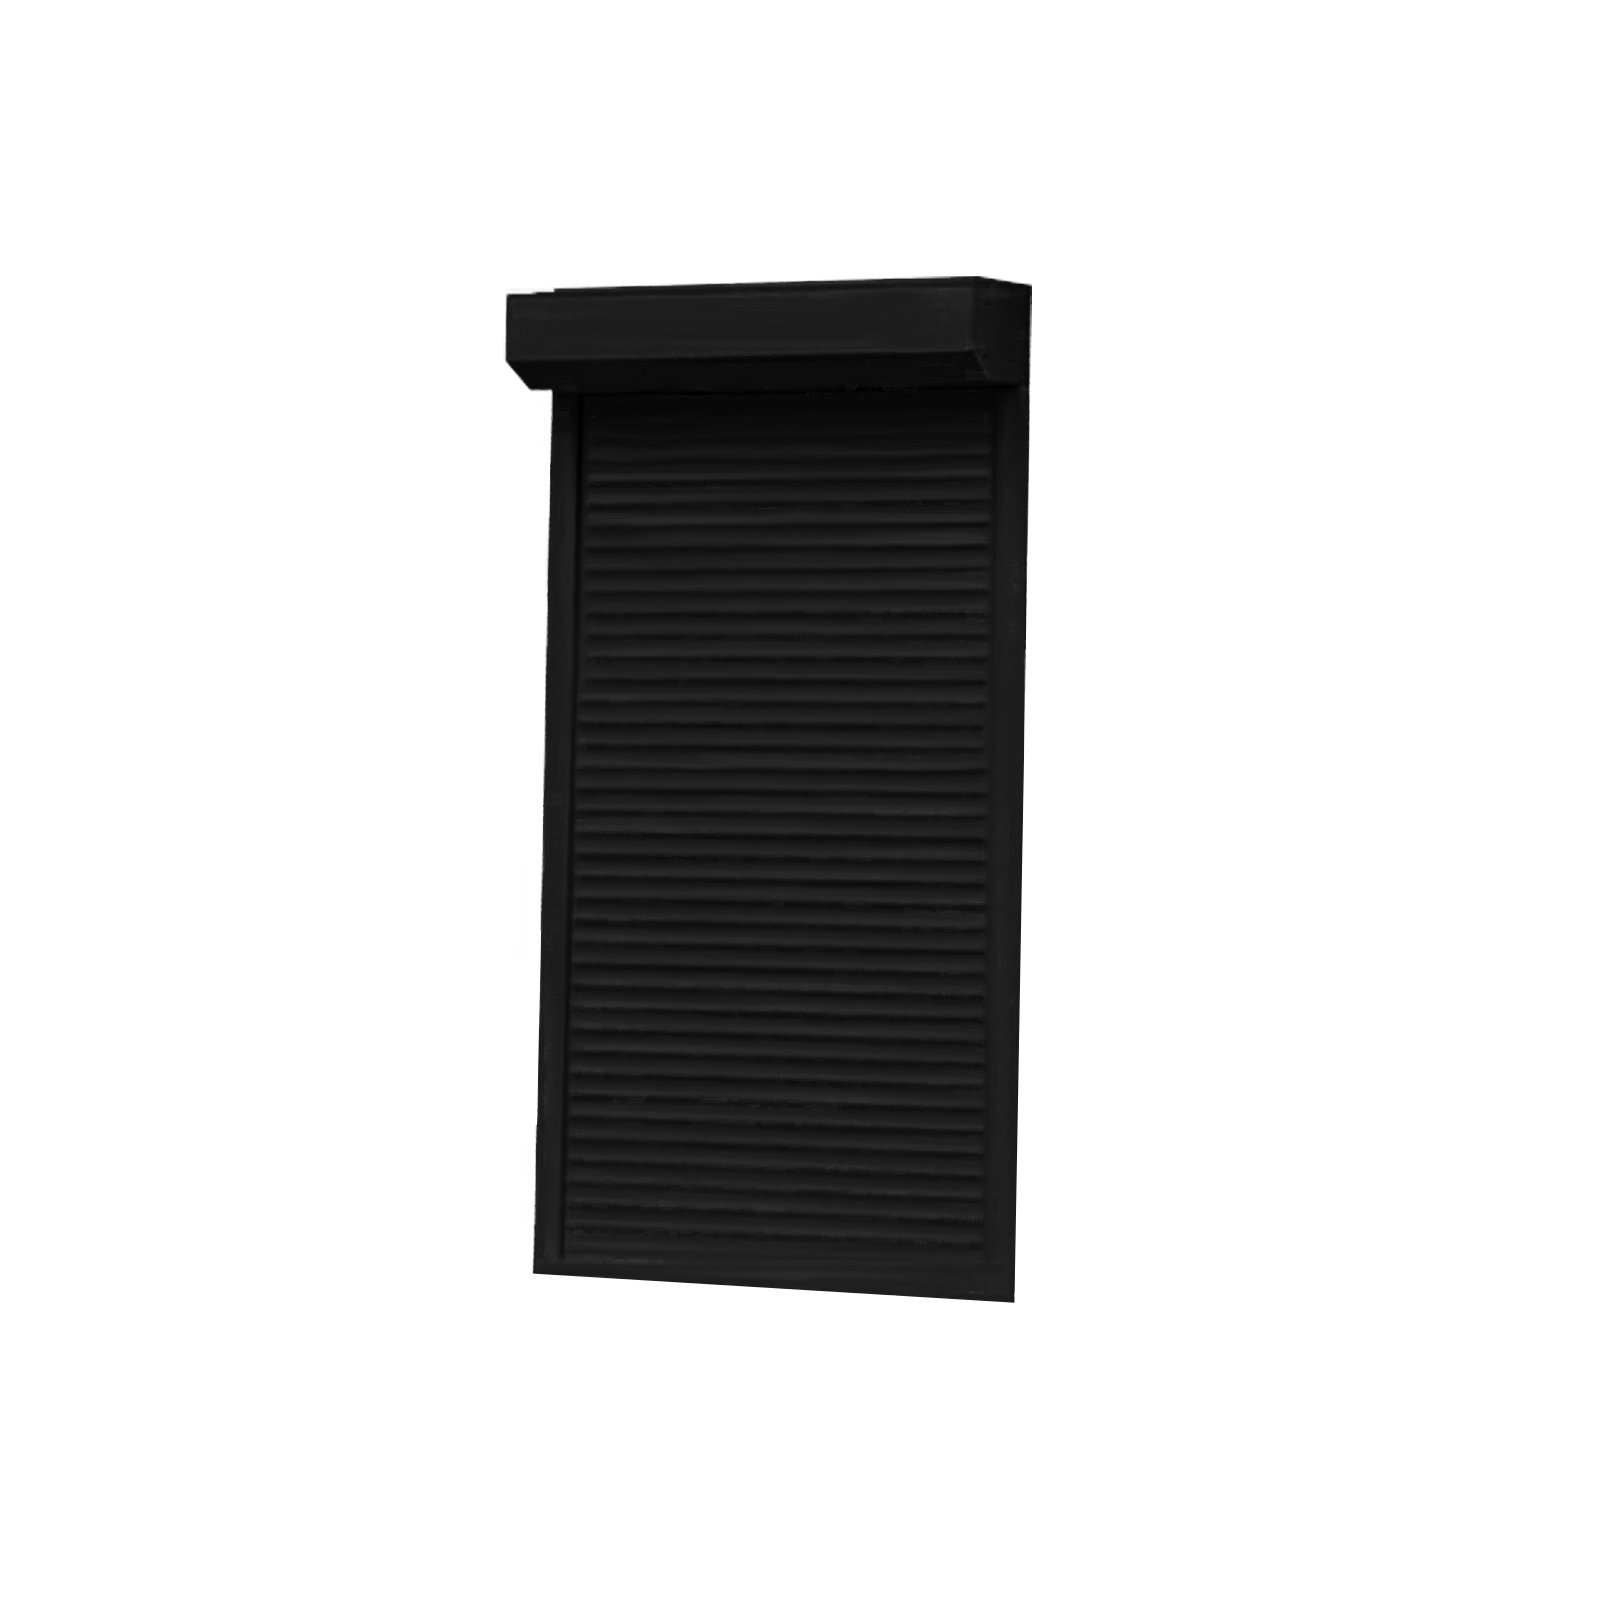 Everton 2001-2200mm H x 1801-2000mm W On-Wall Hardwired Roller Shutter